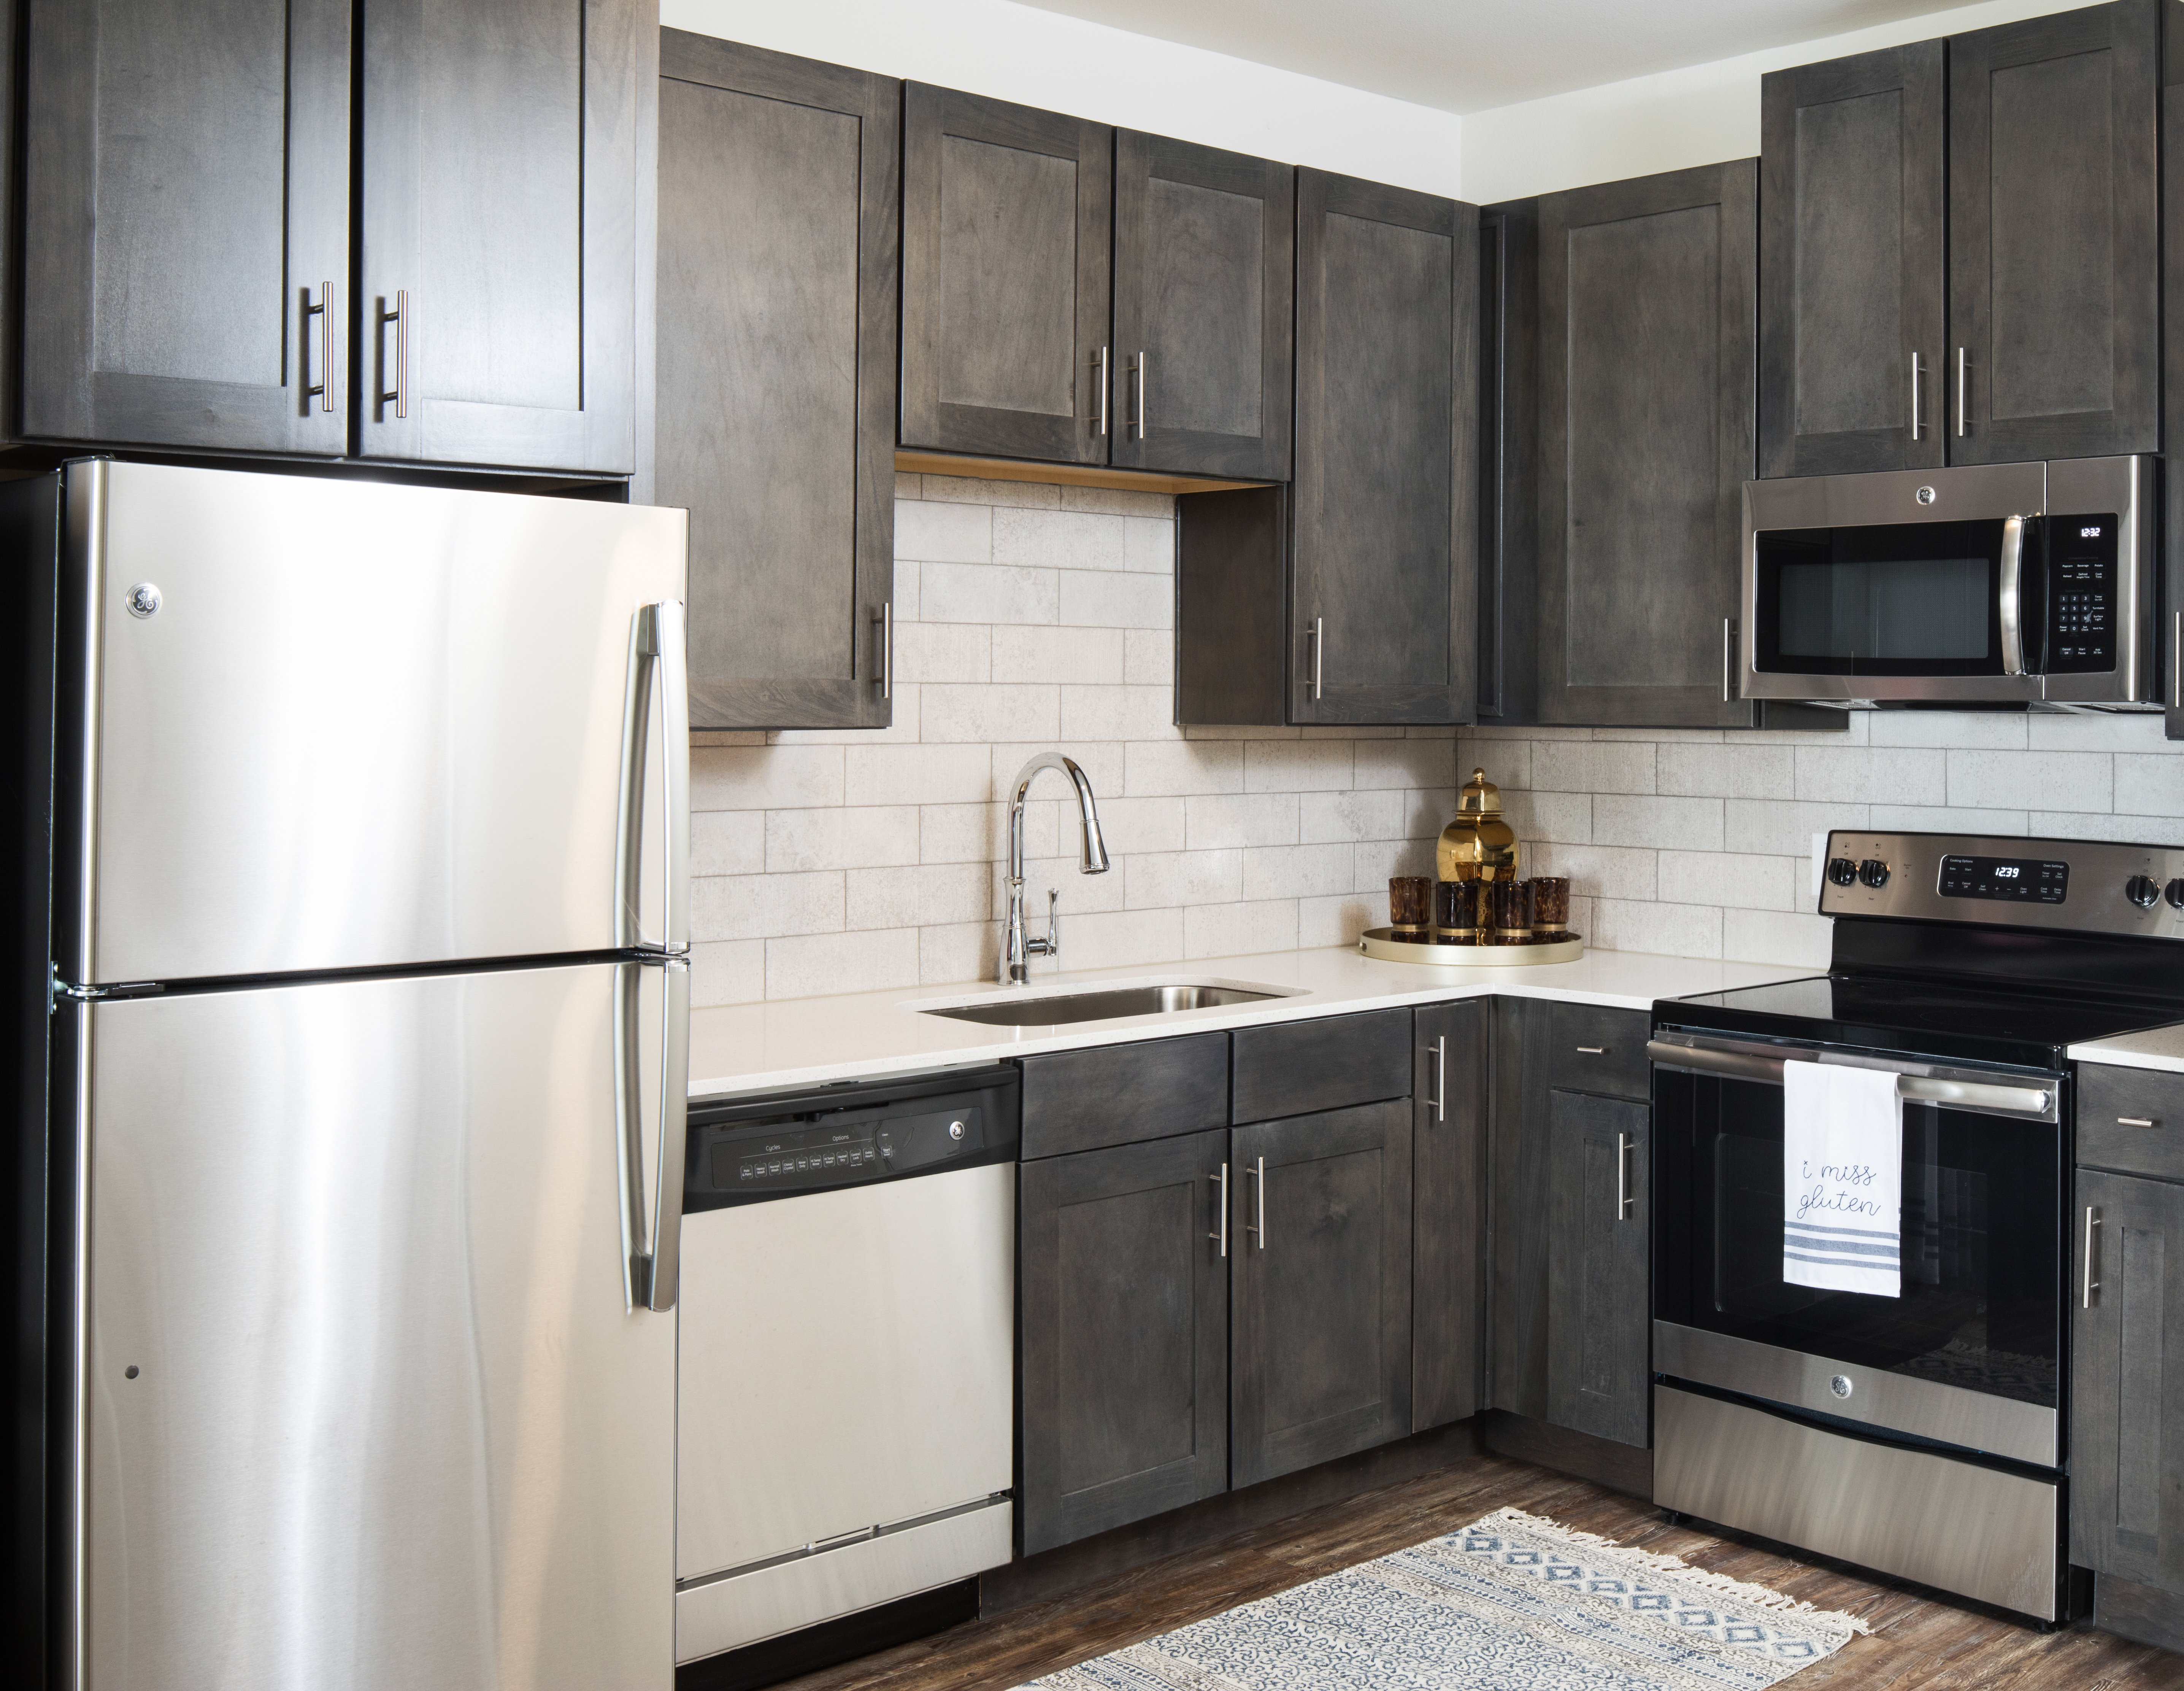 New apartments for rent in mckinney tx davis at the square - Cheap interior detailing near me ...